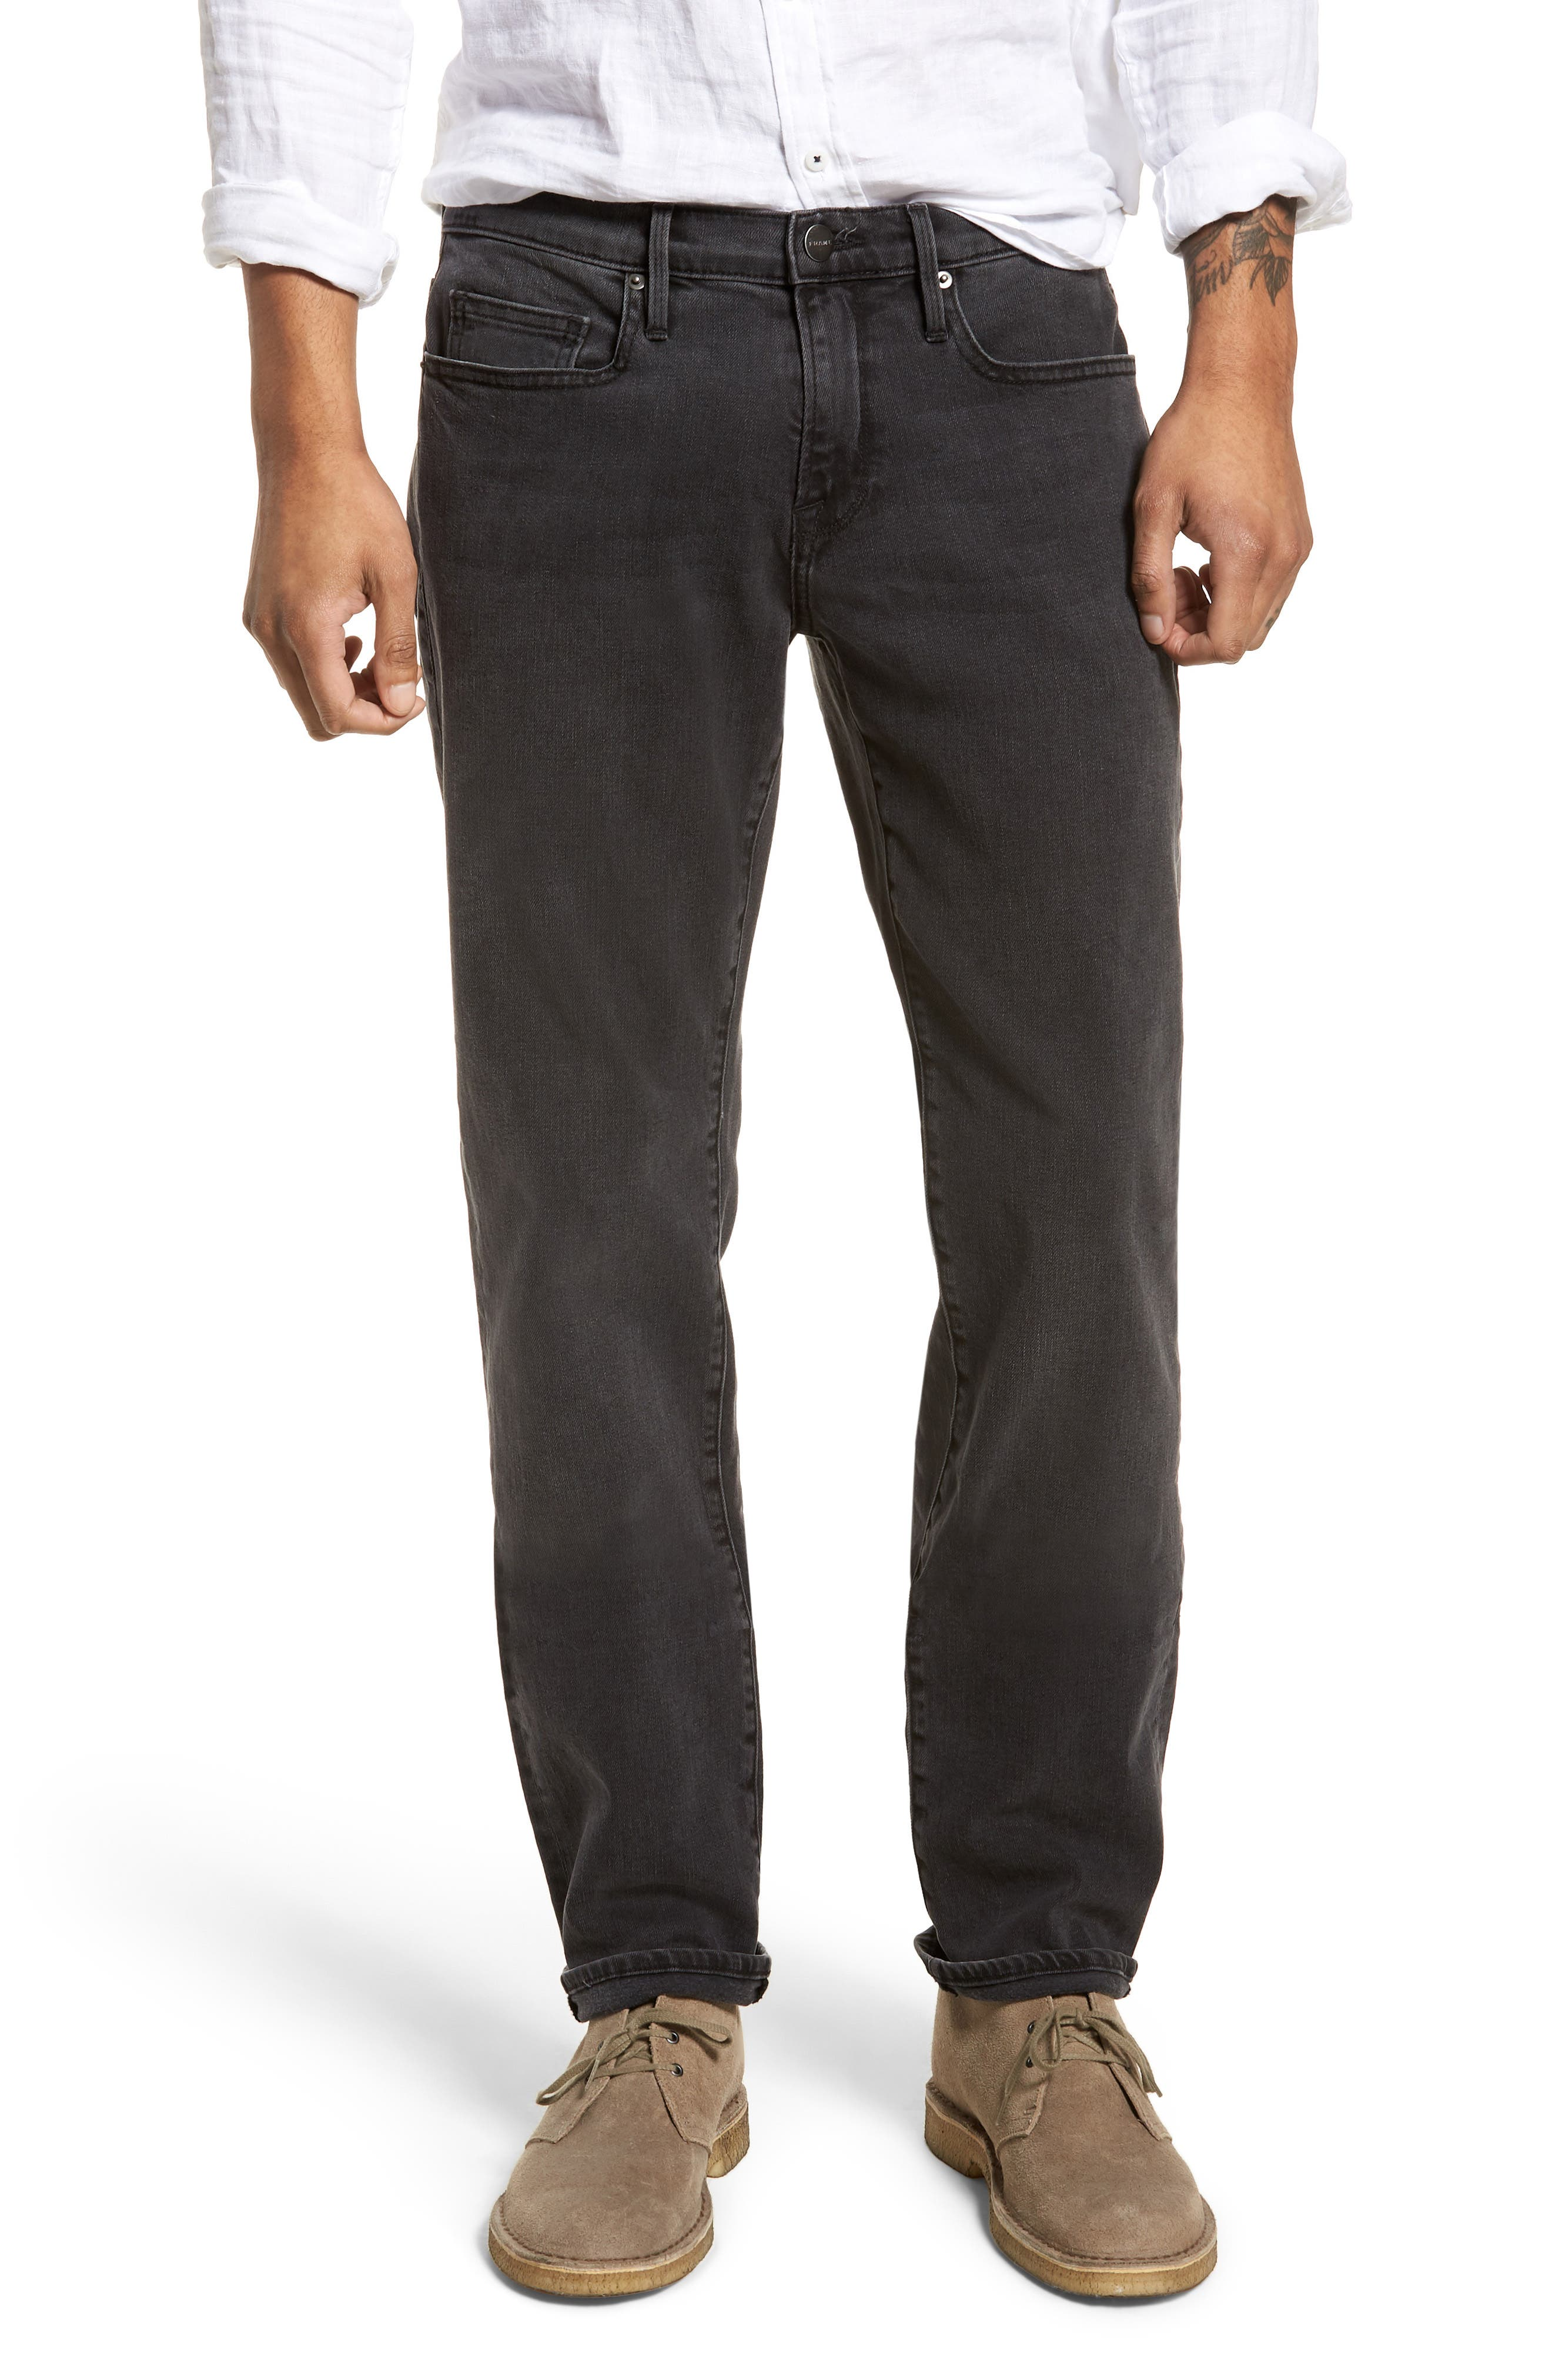 L'Homme Straight Leg Jeans,                             Main thumbnail 1, color,                             FADE TO GREY